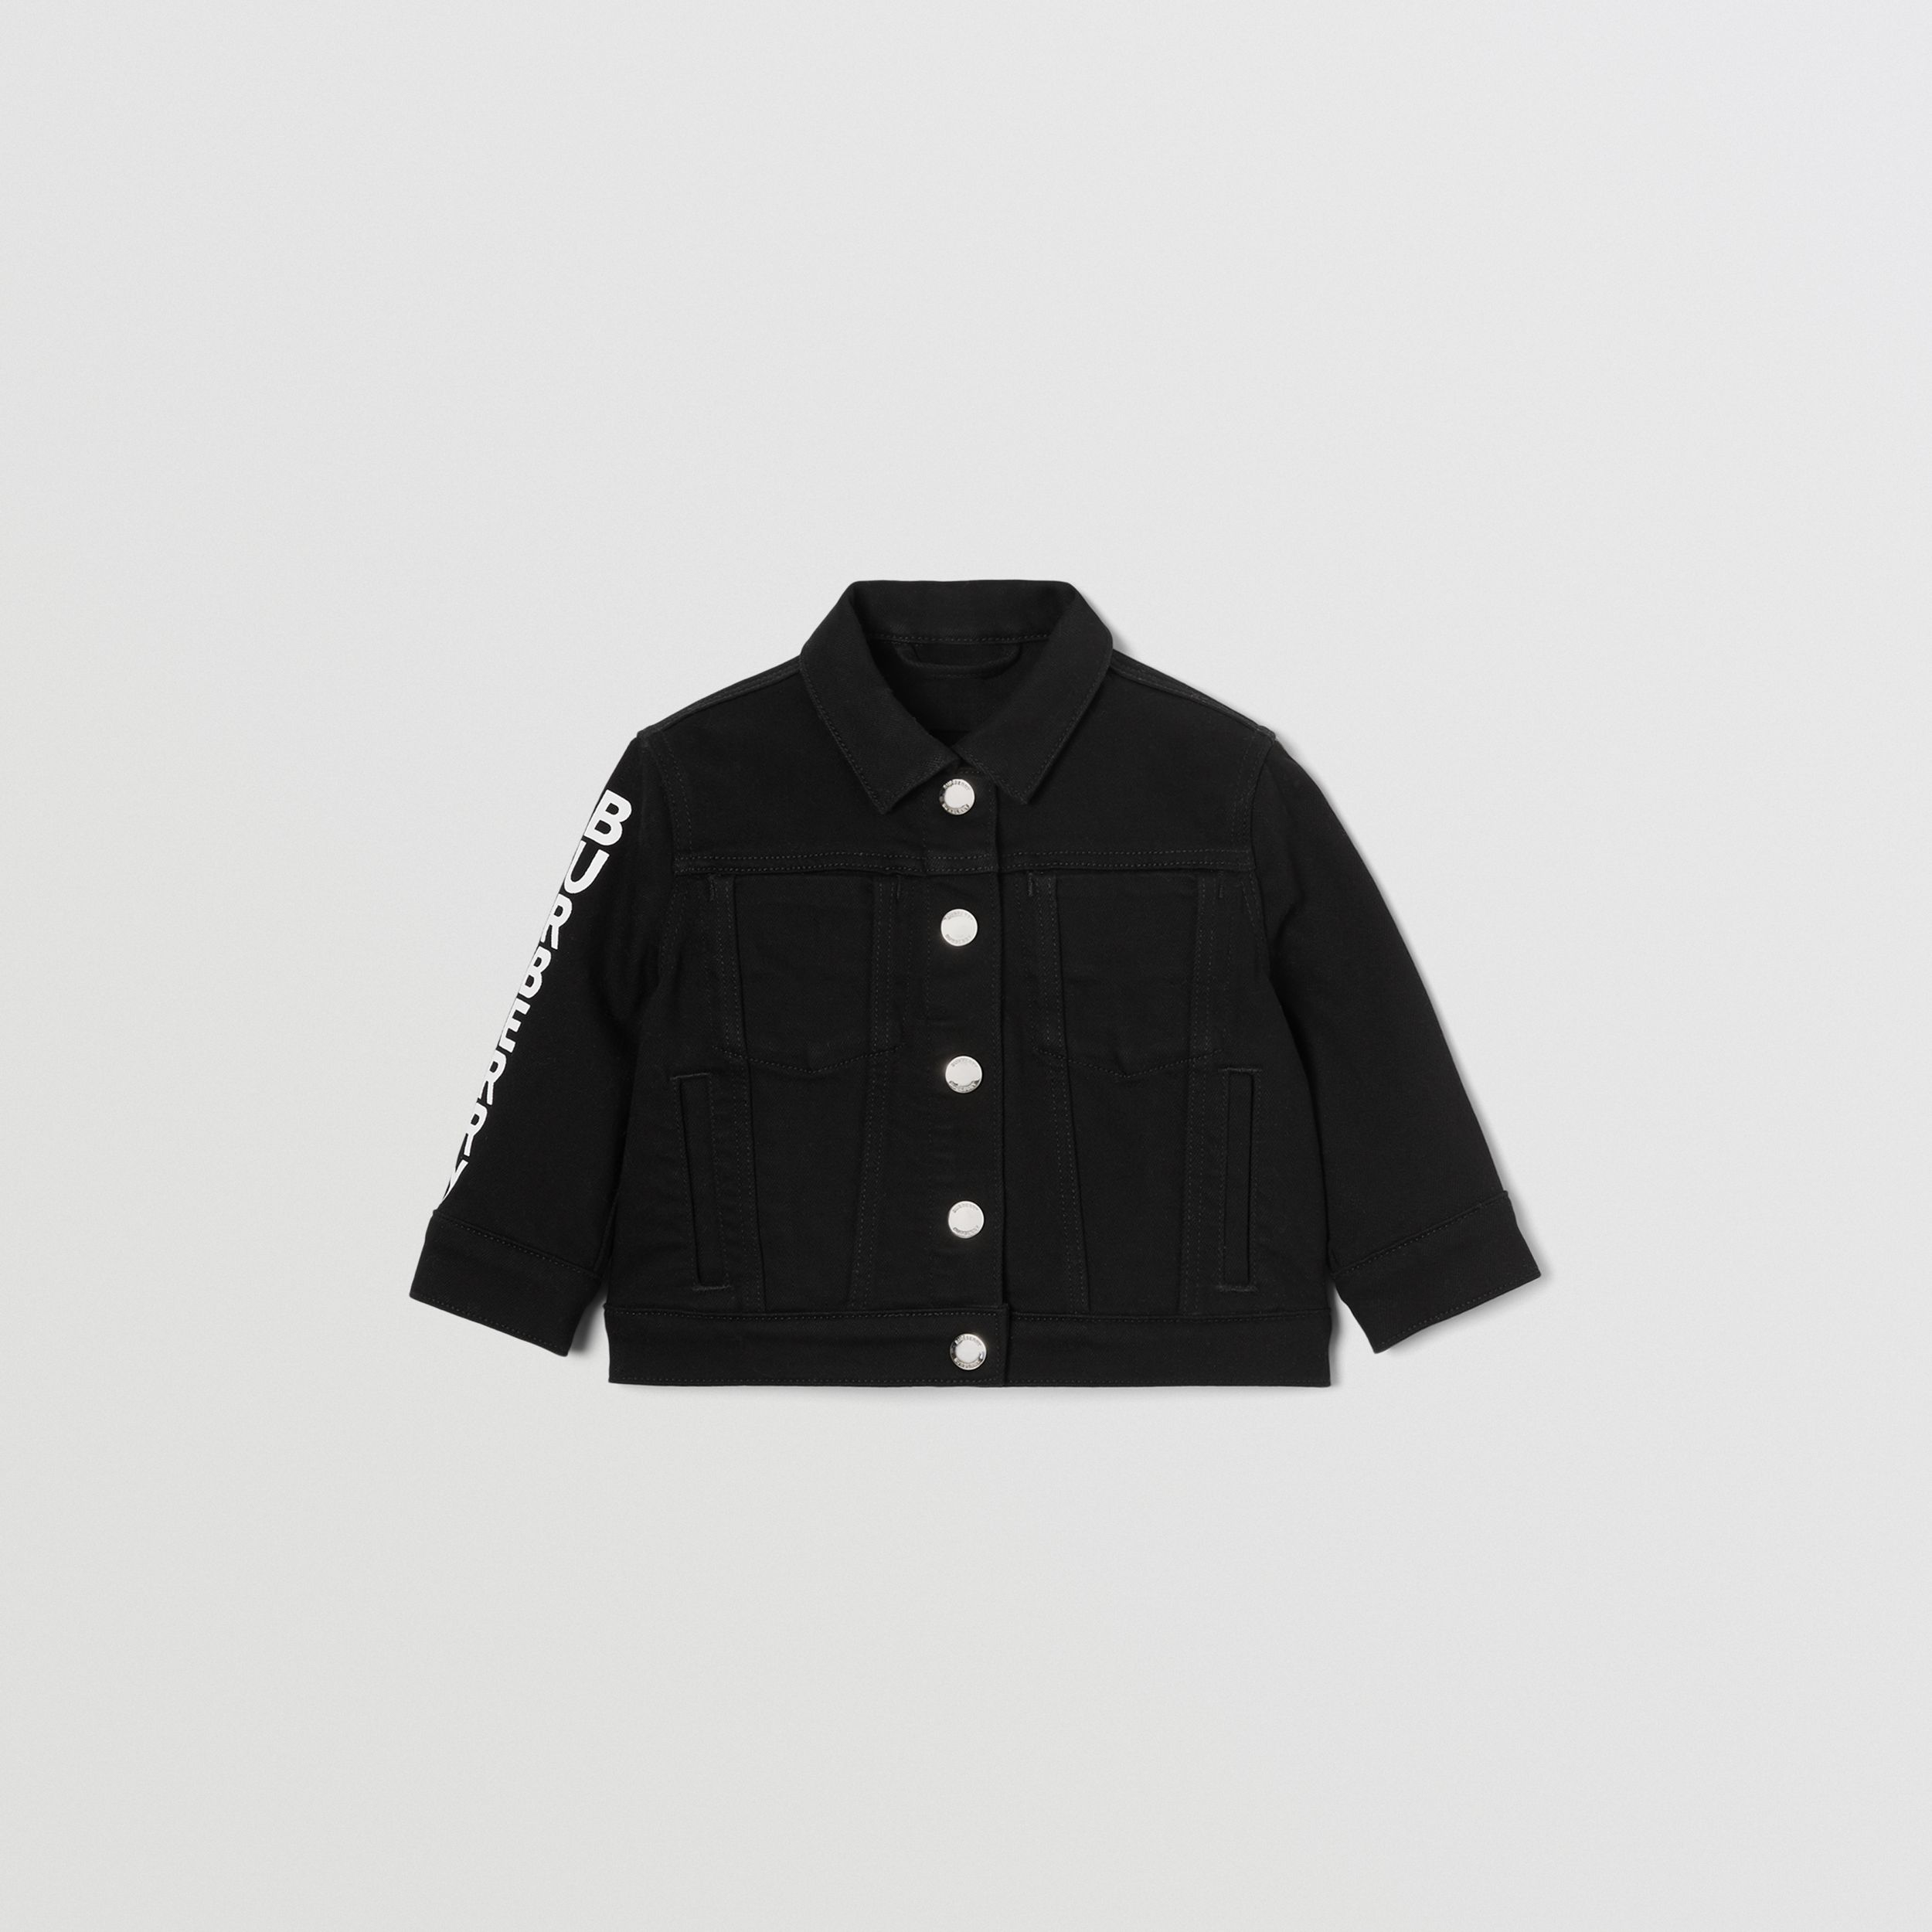 Logo Print Japanese Denim Jacket in Black - Children | Burberry - 1